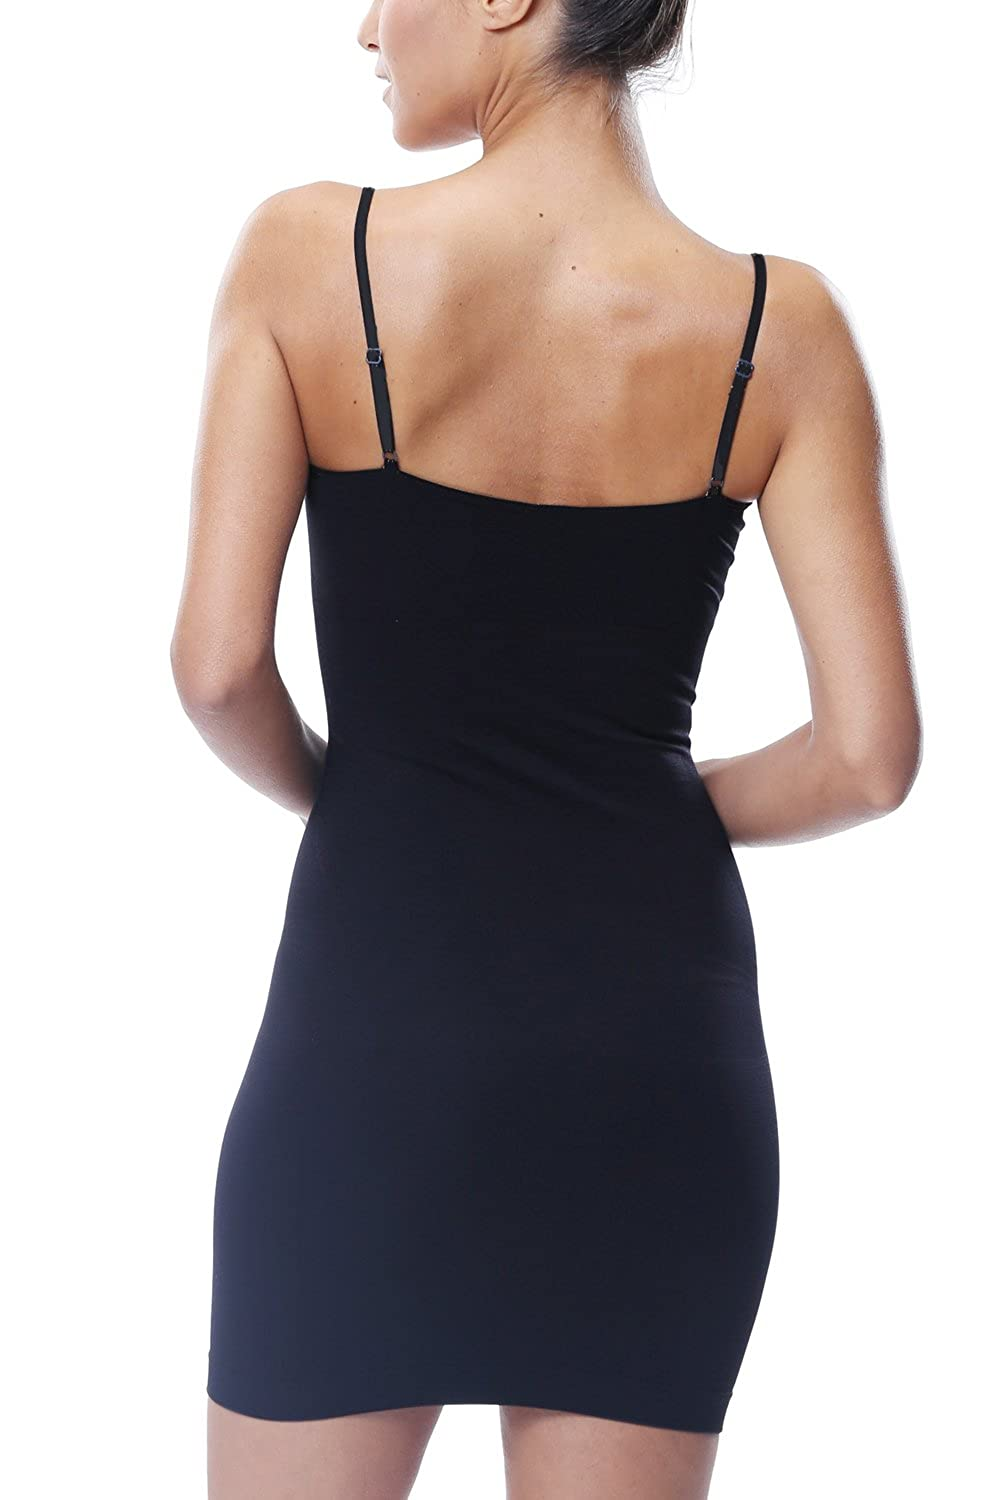 Women Full Body Shaper Control Slip with Lace Adjustable Strap Casual Cami Slip